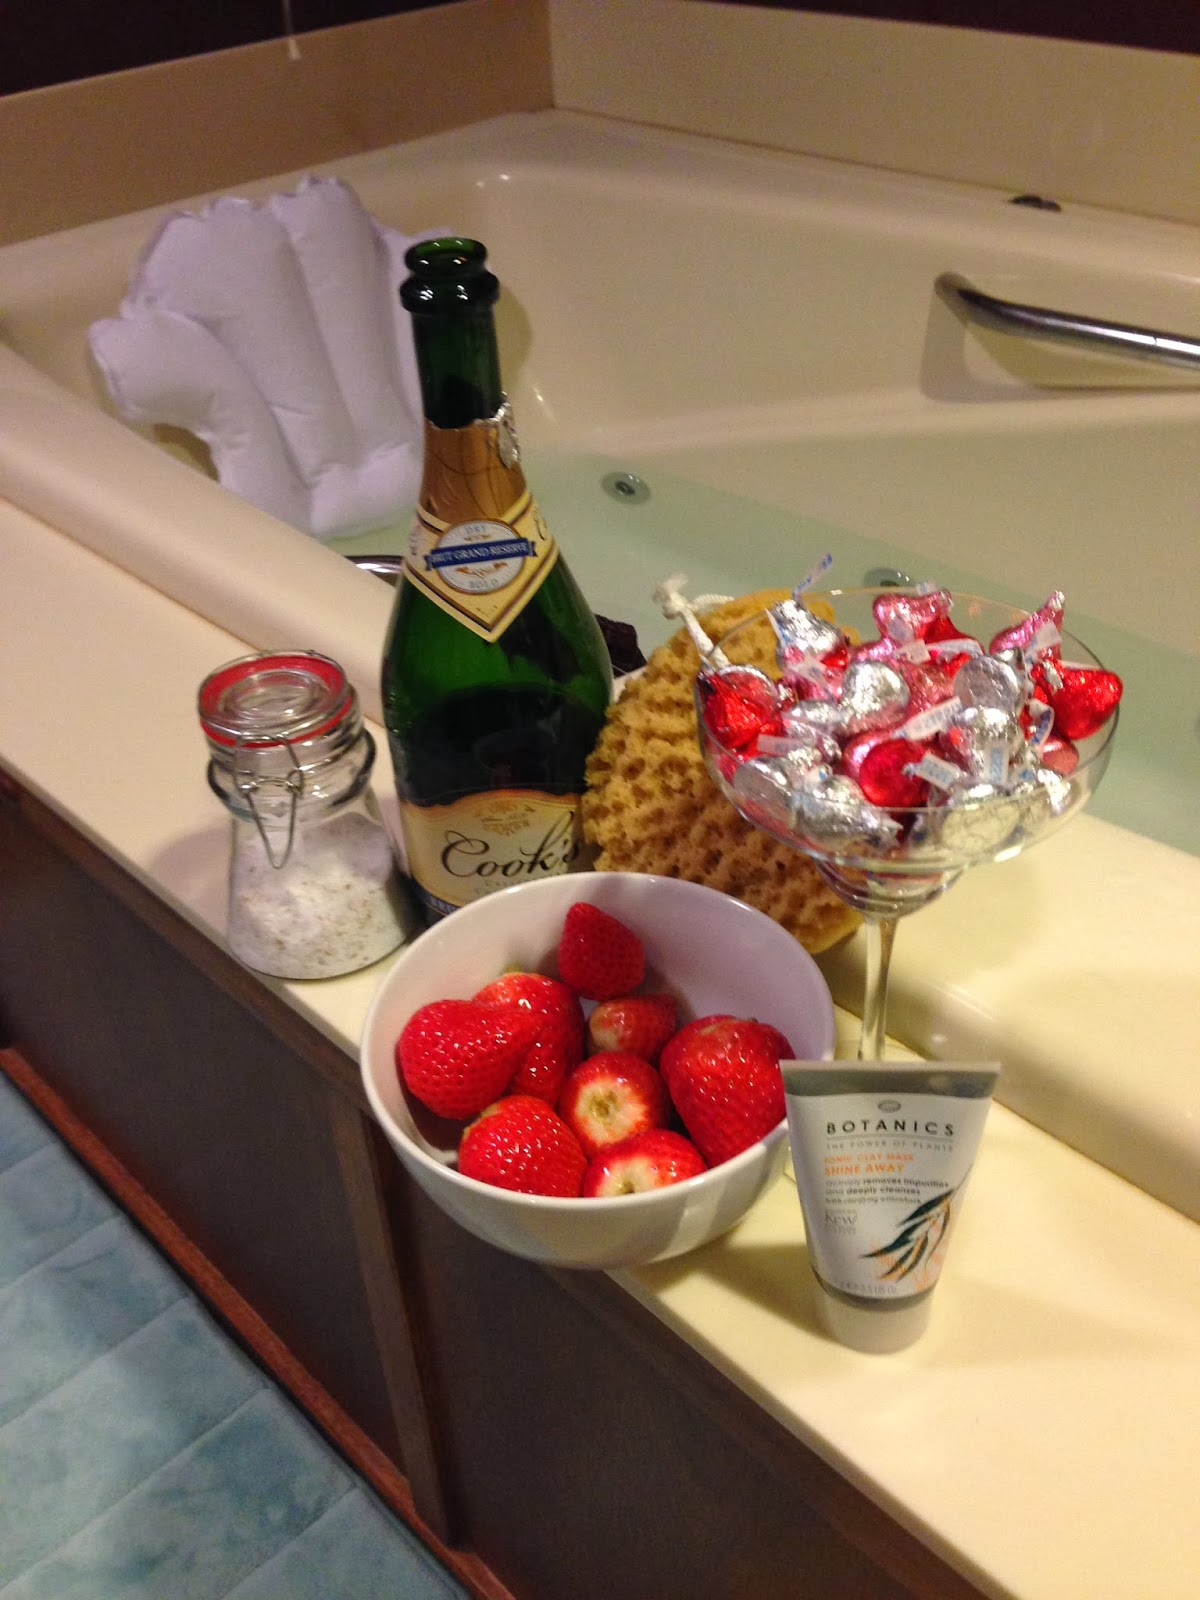 Bath salts, sparkling wine, loofah, dessert, and face mask